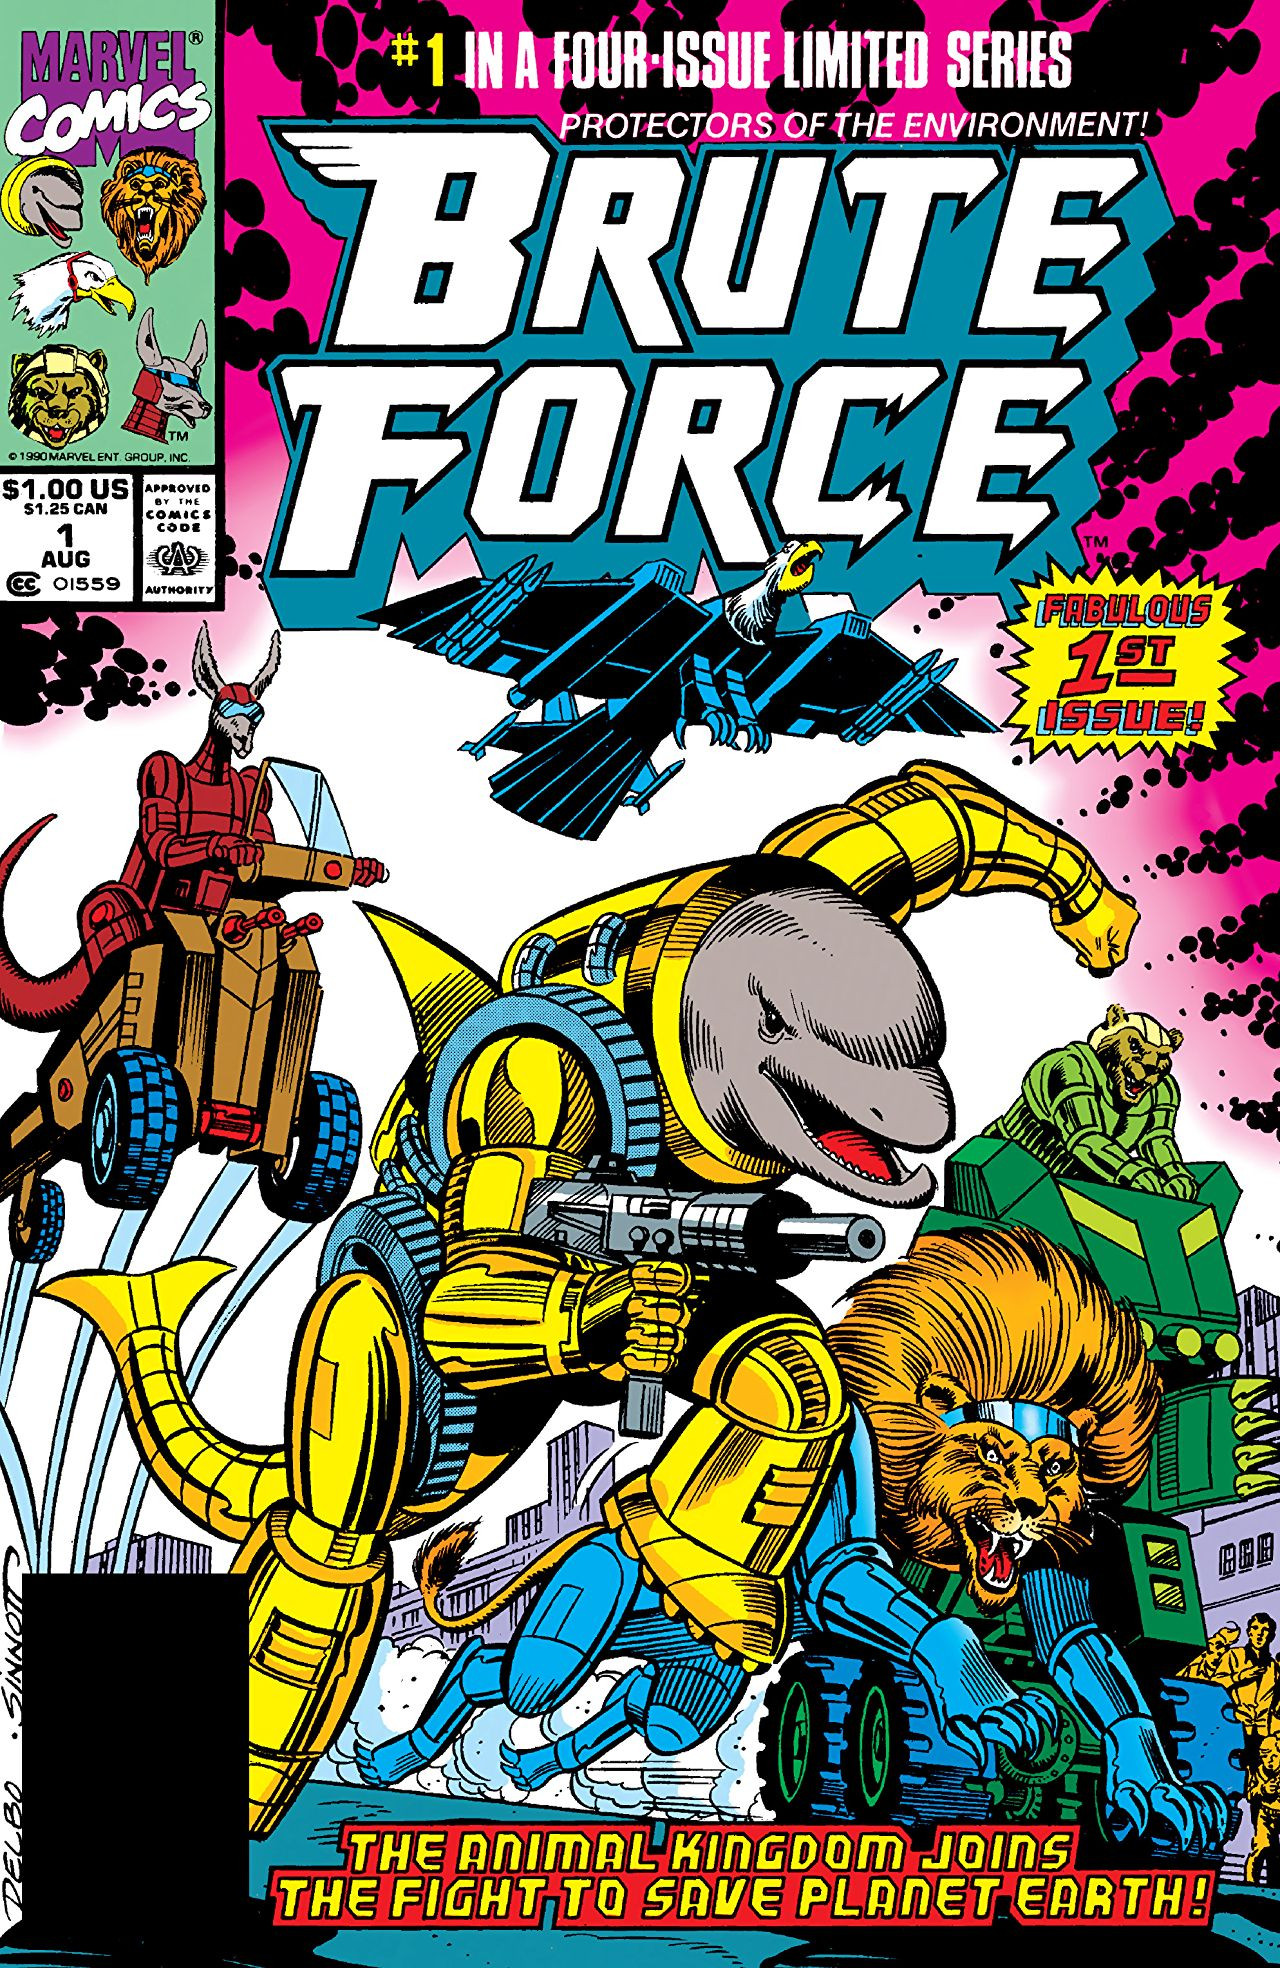 Project Brute Force (Earth-616)/Gallery